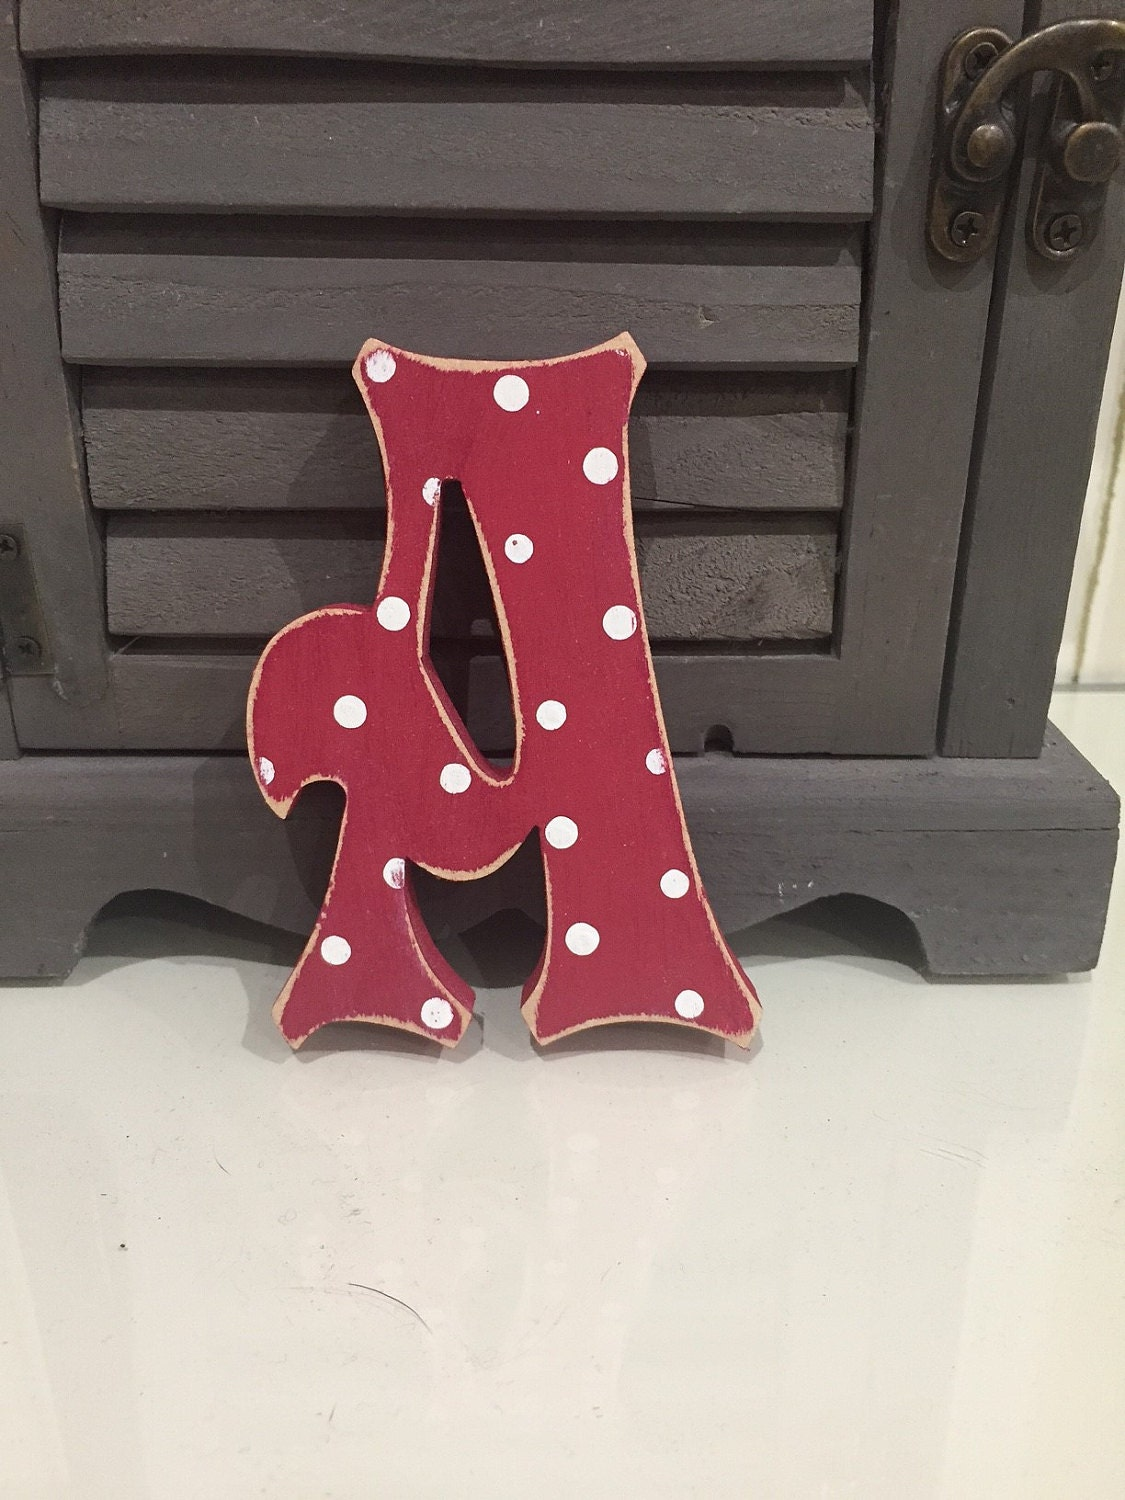 Letter A - Storybook Font - shown in red with white polka dots and a distressed finish